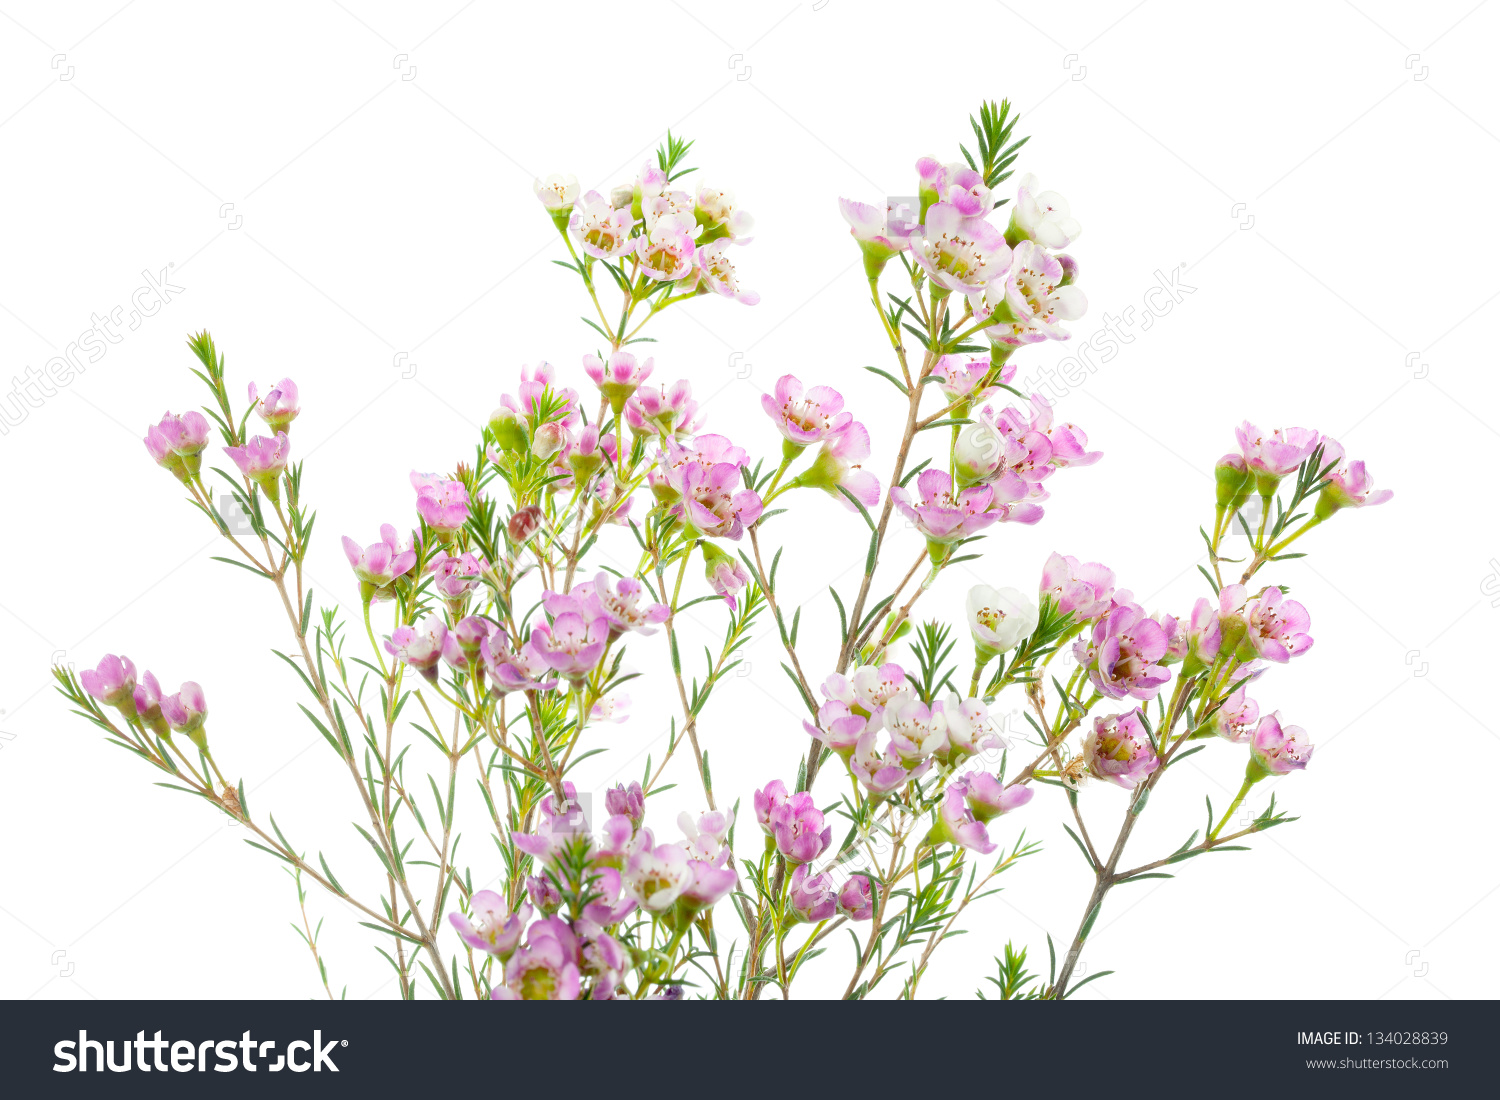 Closeup Waxflower Plant Isolated On White Stock Photo 134028839.